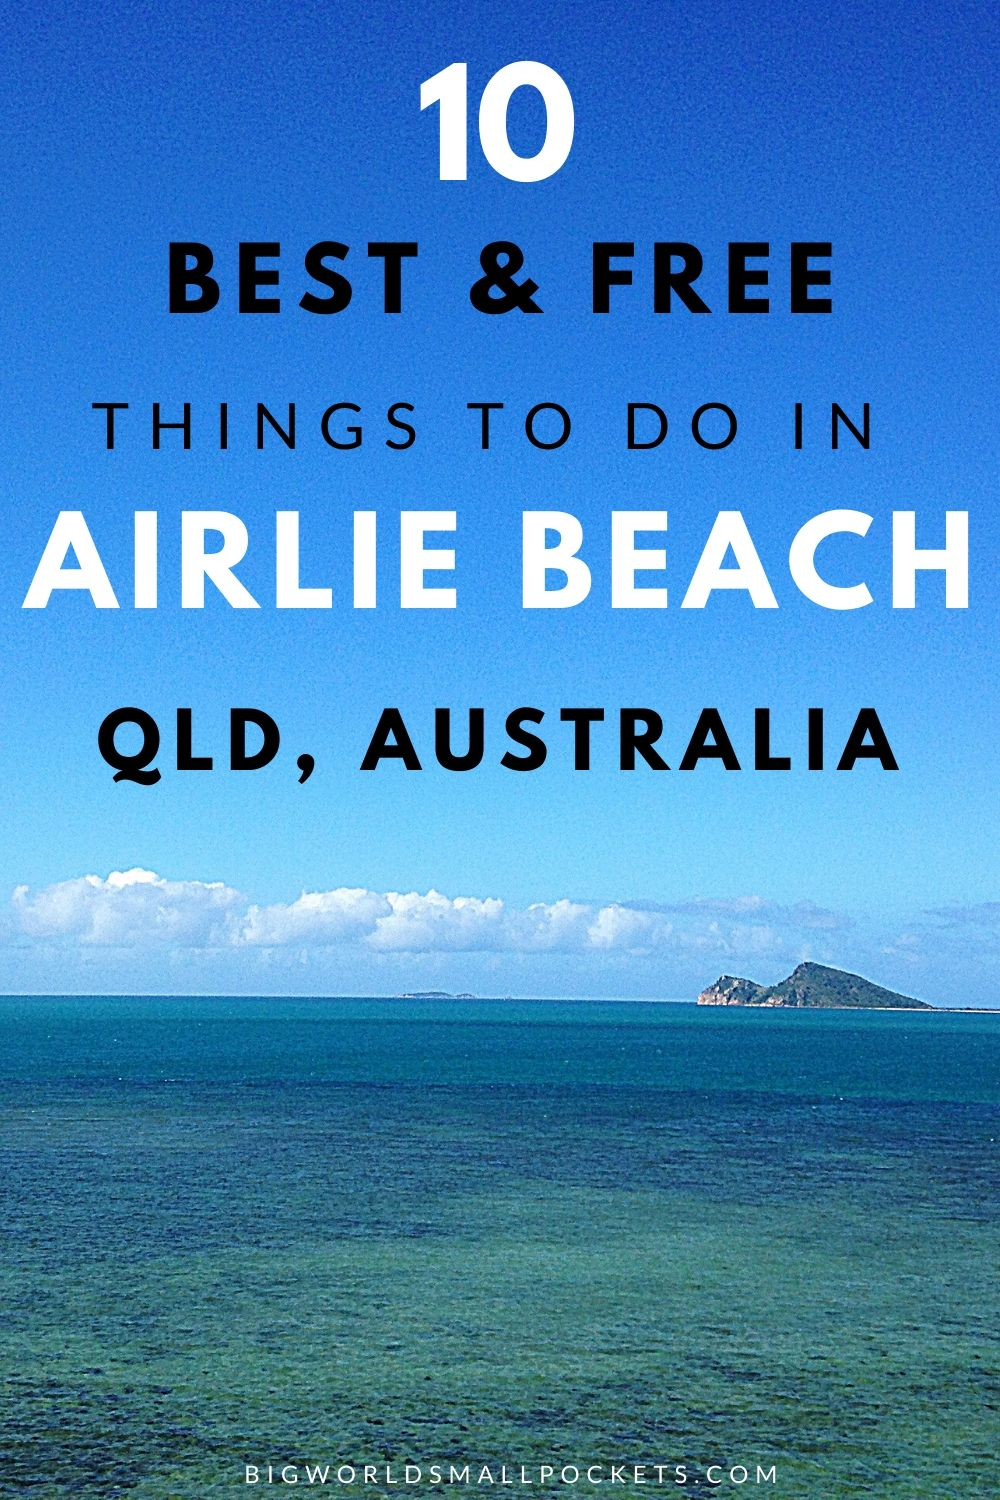 Top 10 Things to Do in Airlie Beach - Gateway to the Whitsundays in Queensland, Australia